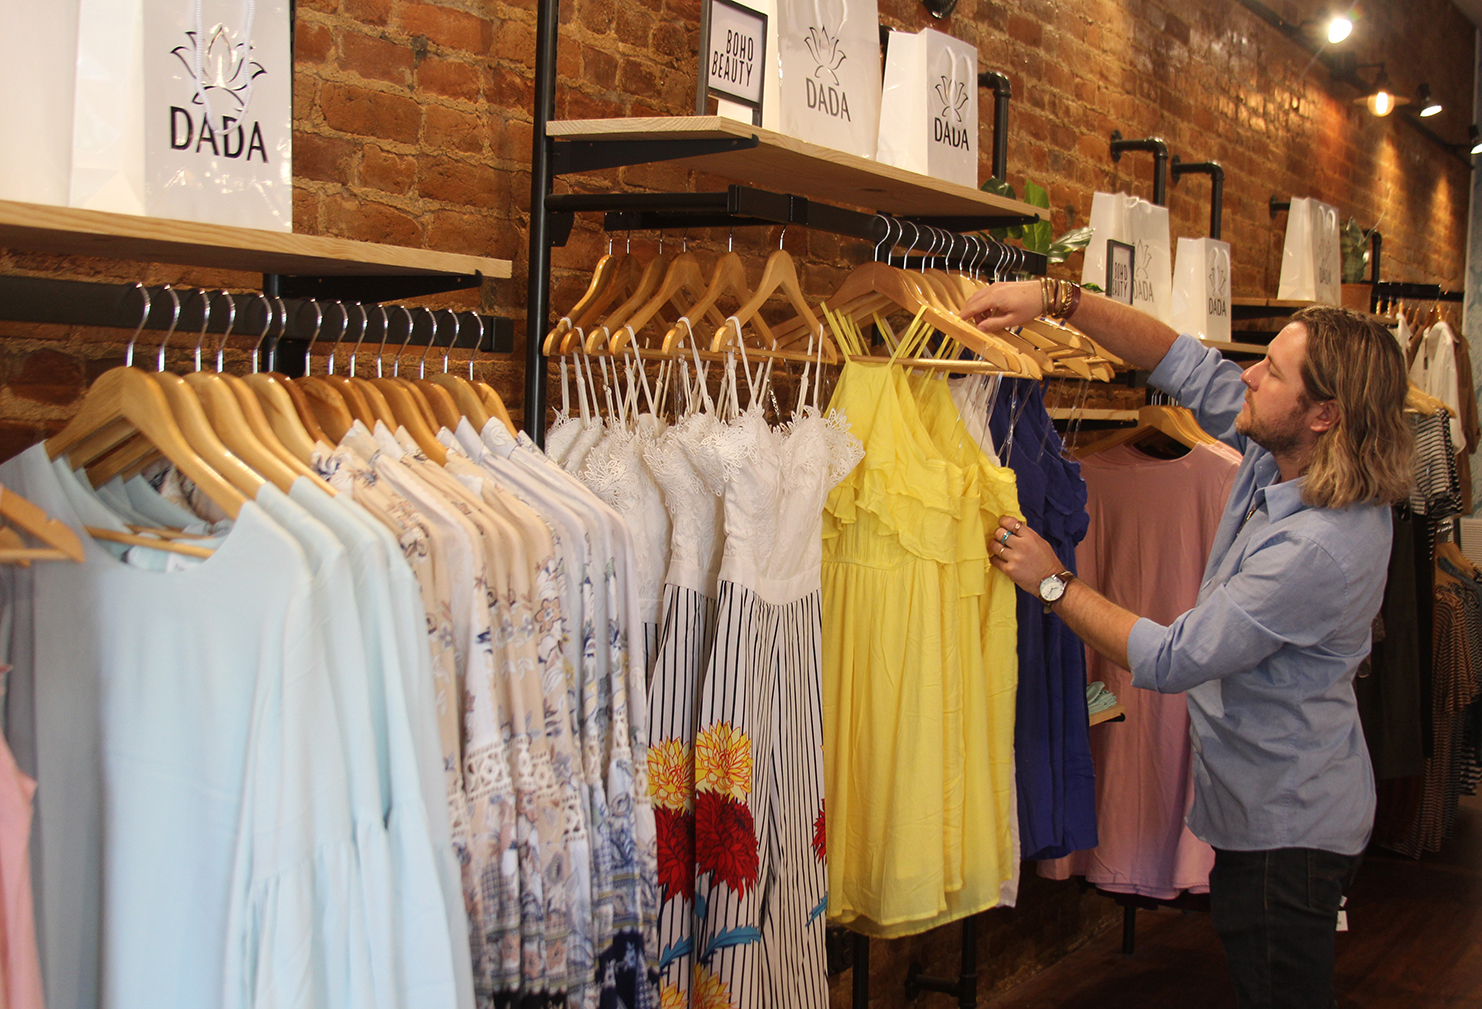 Dada strives to reform idea of boutiques